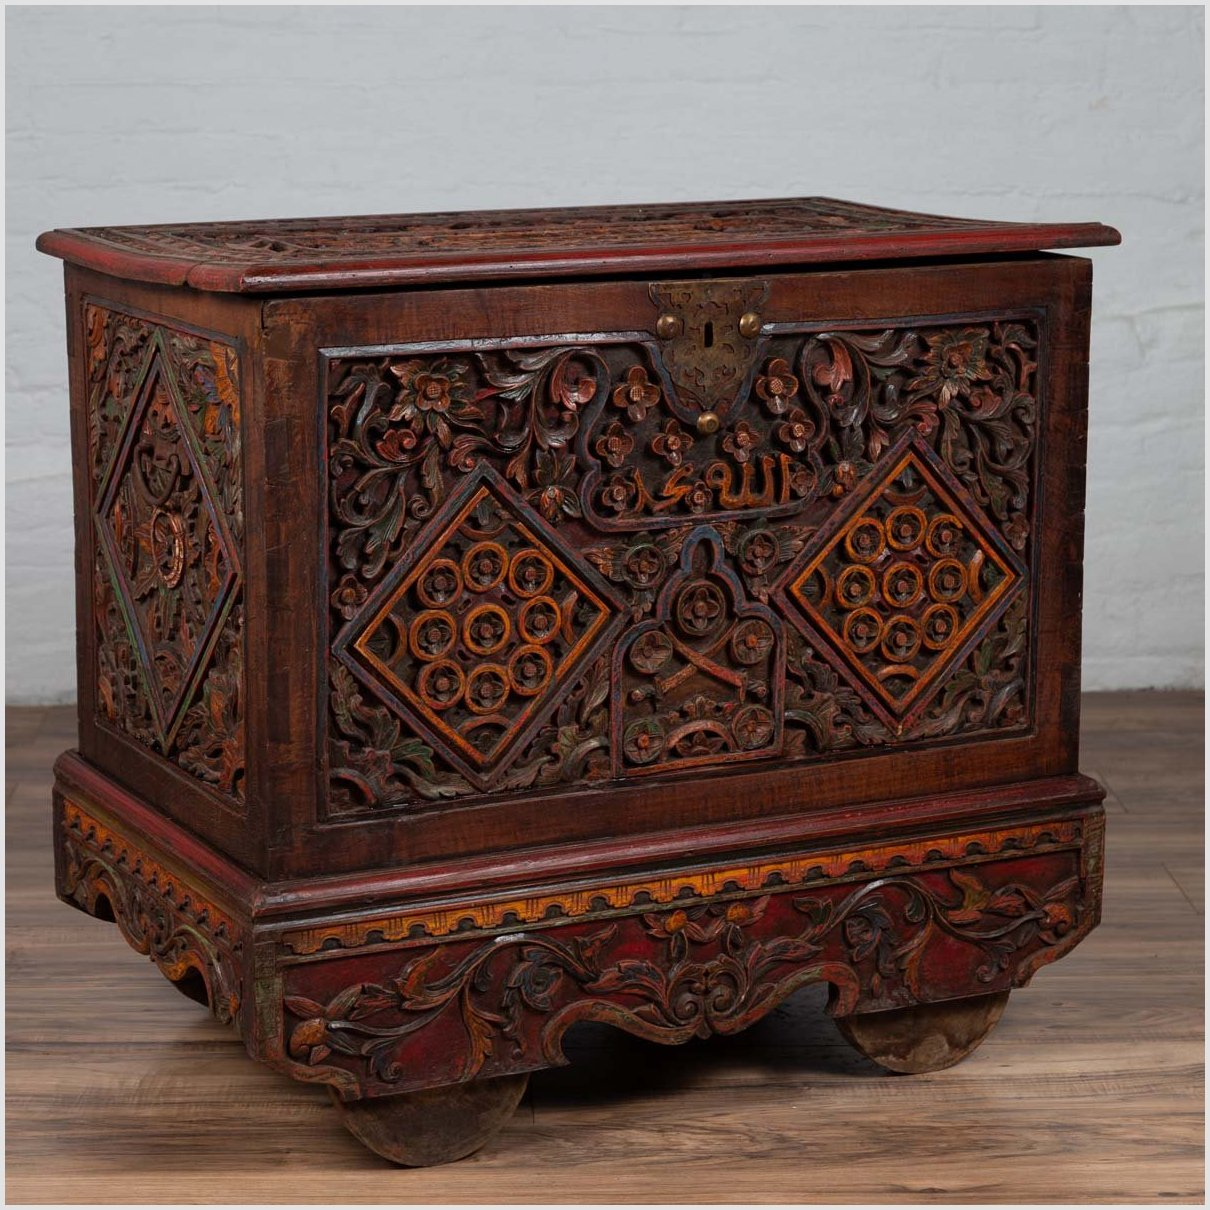 Antique Indonesian Hand Carved Blanket Chest with Polychrome Decor and Wheels